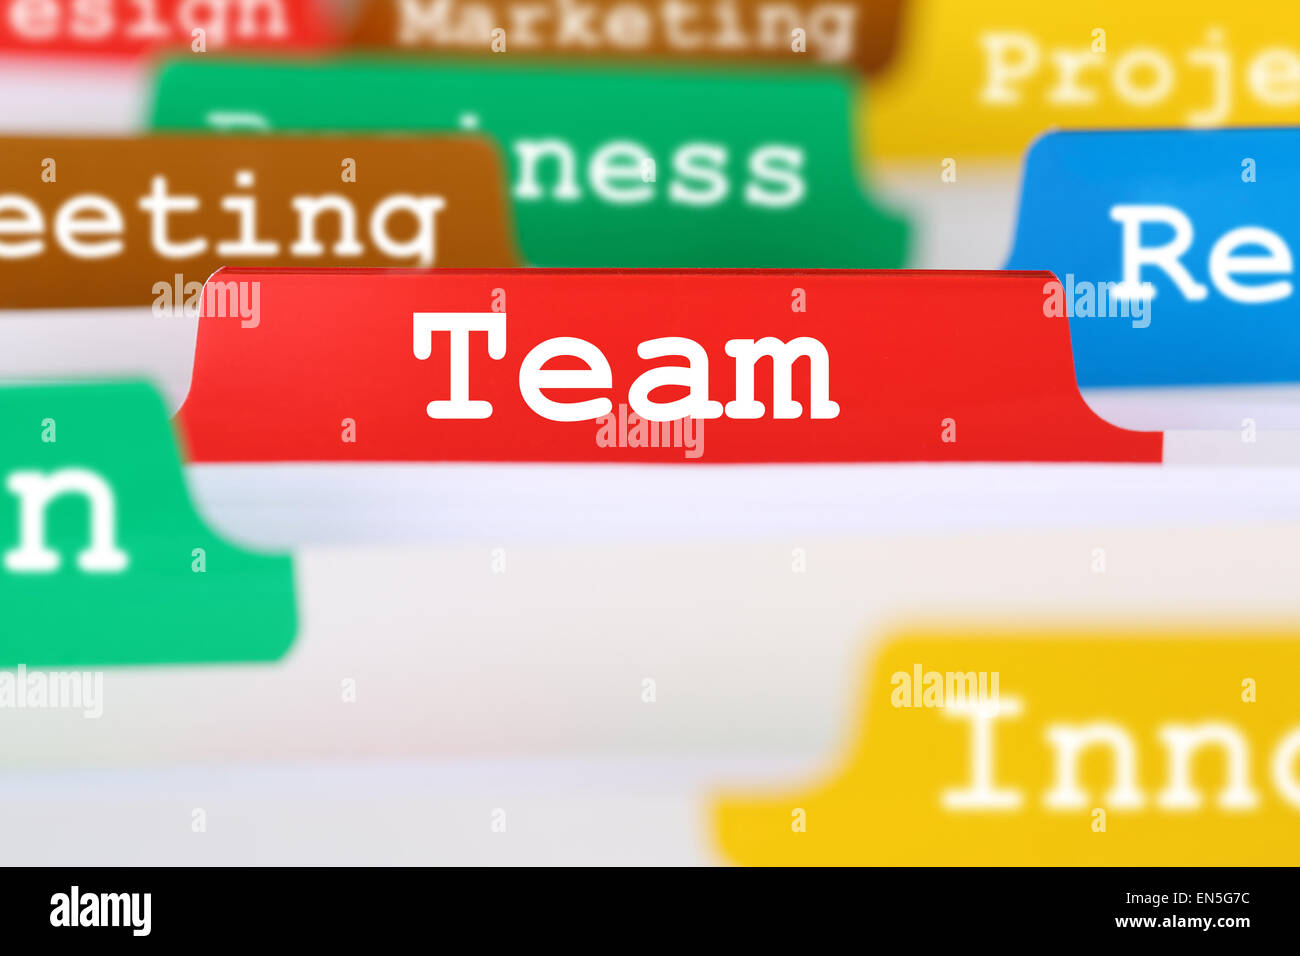 Together community team or teamwork office text on register in business services documents - Stock Image